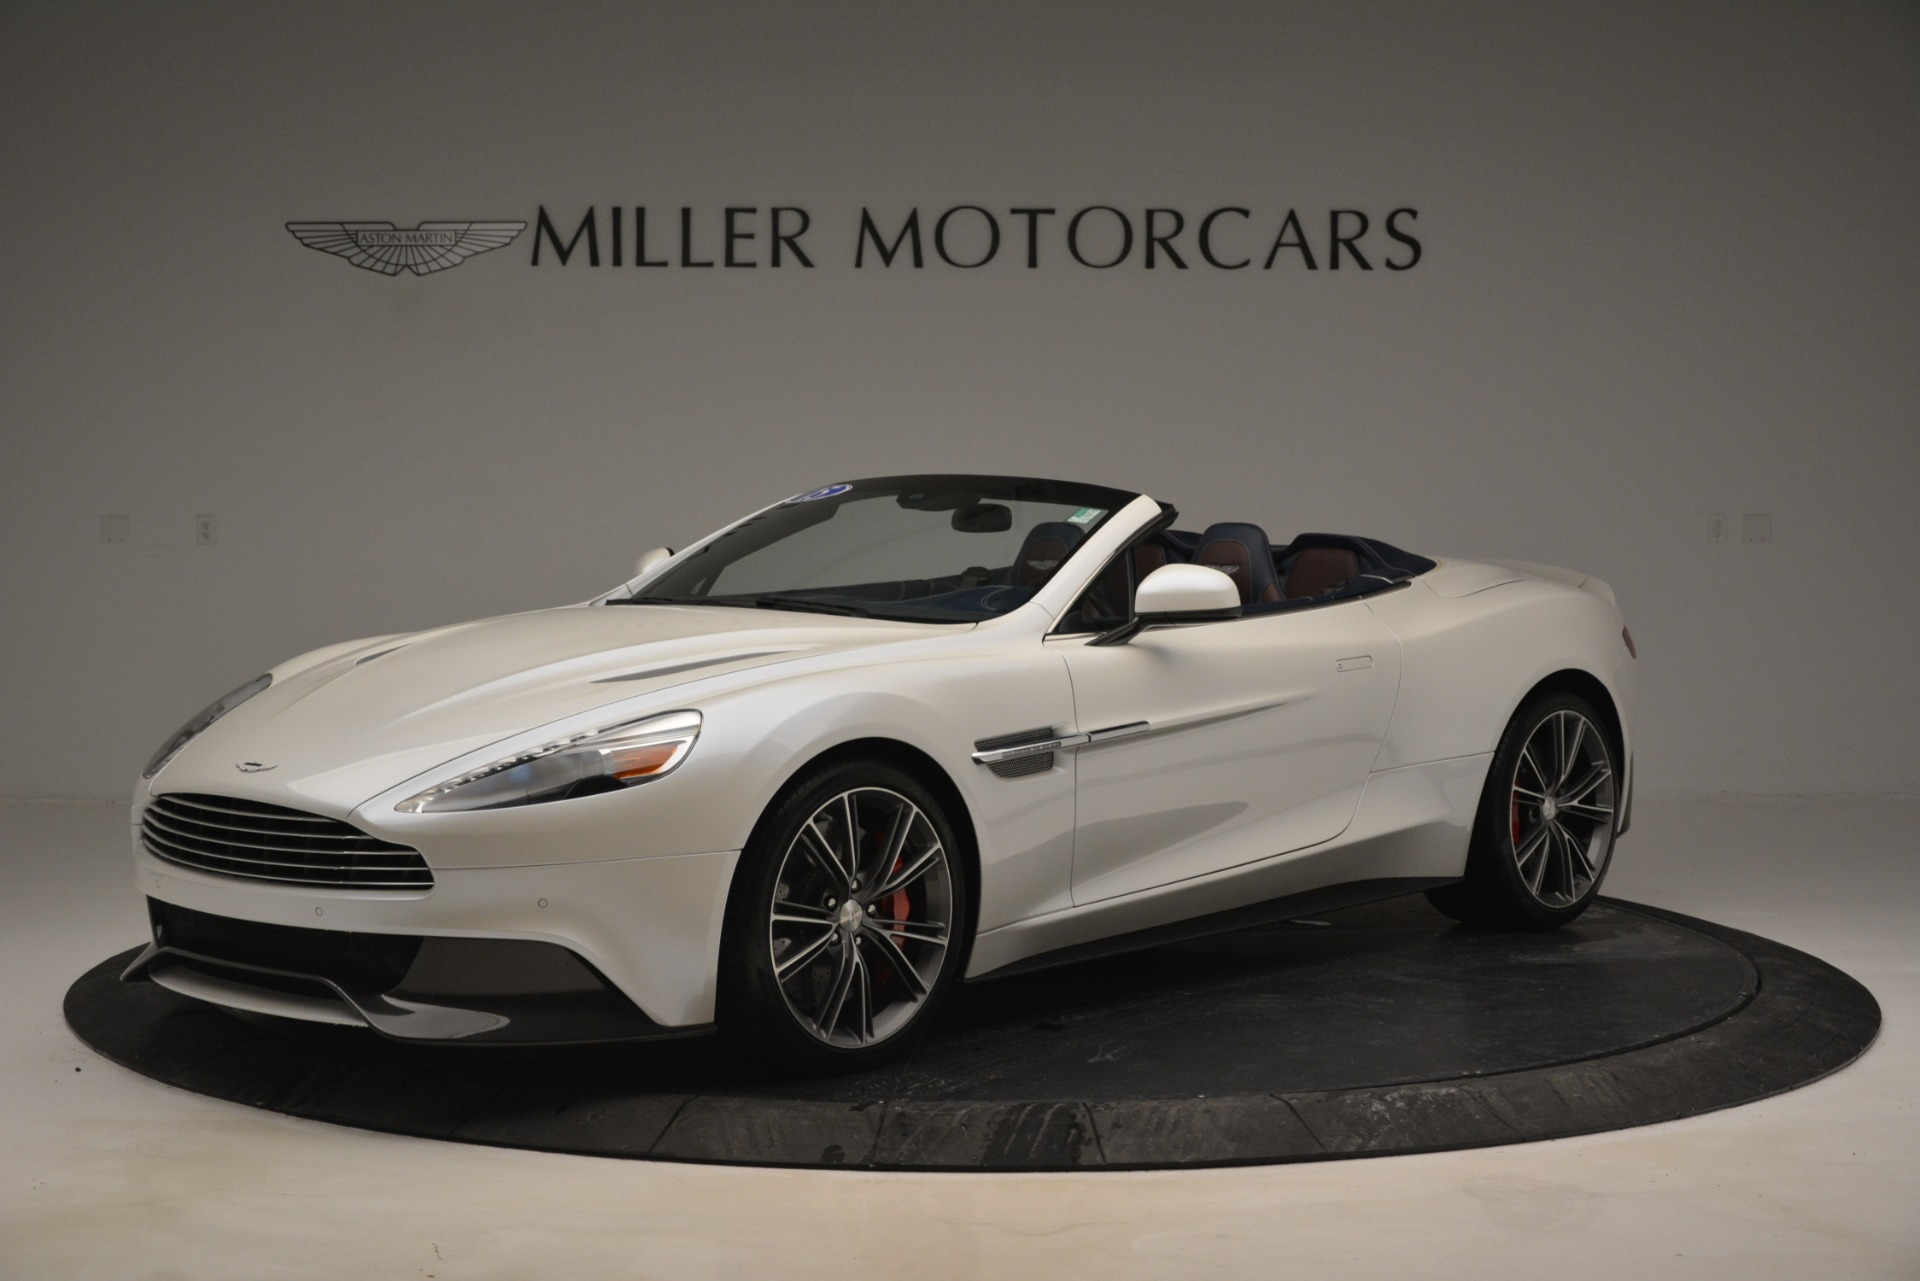 Used 2015 Aston Martin Vanquish Convertible for sale Sold at McLaren Greenwich in Greenwich CT 06830 1